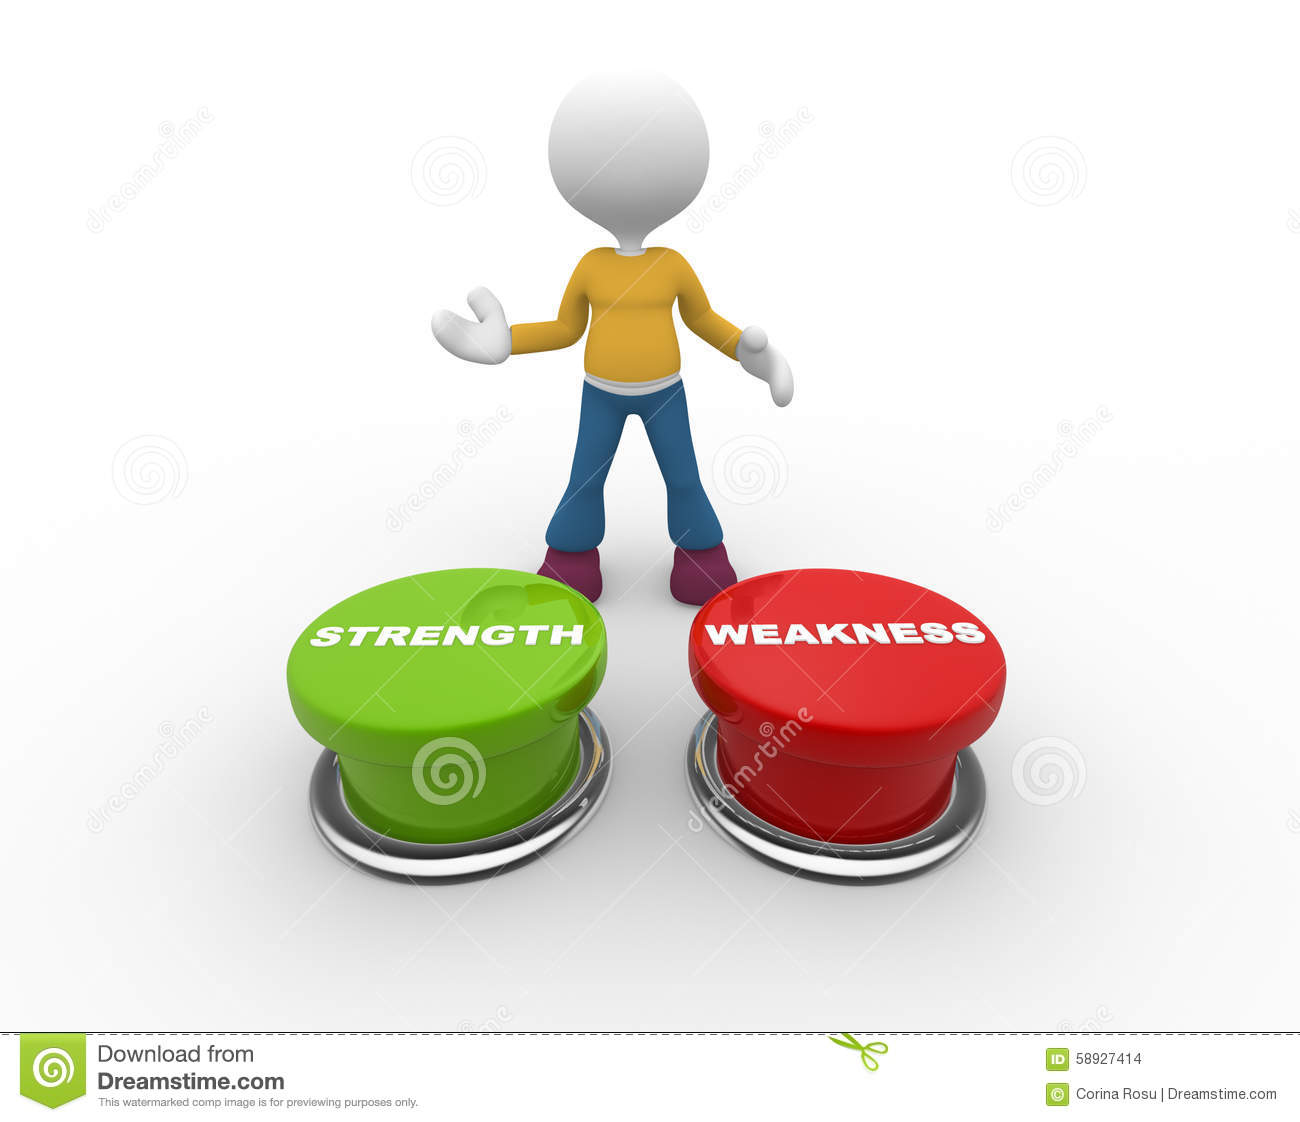 strength vs weakness stock illustration image  strength vs weakness